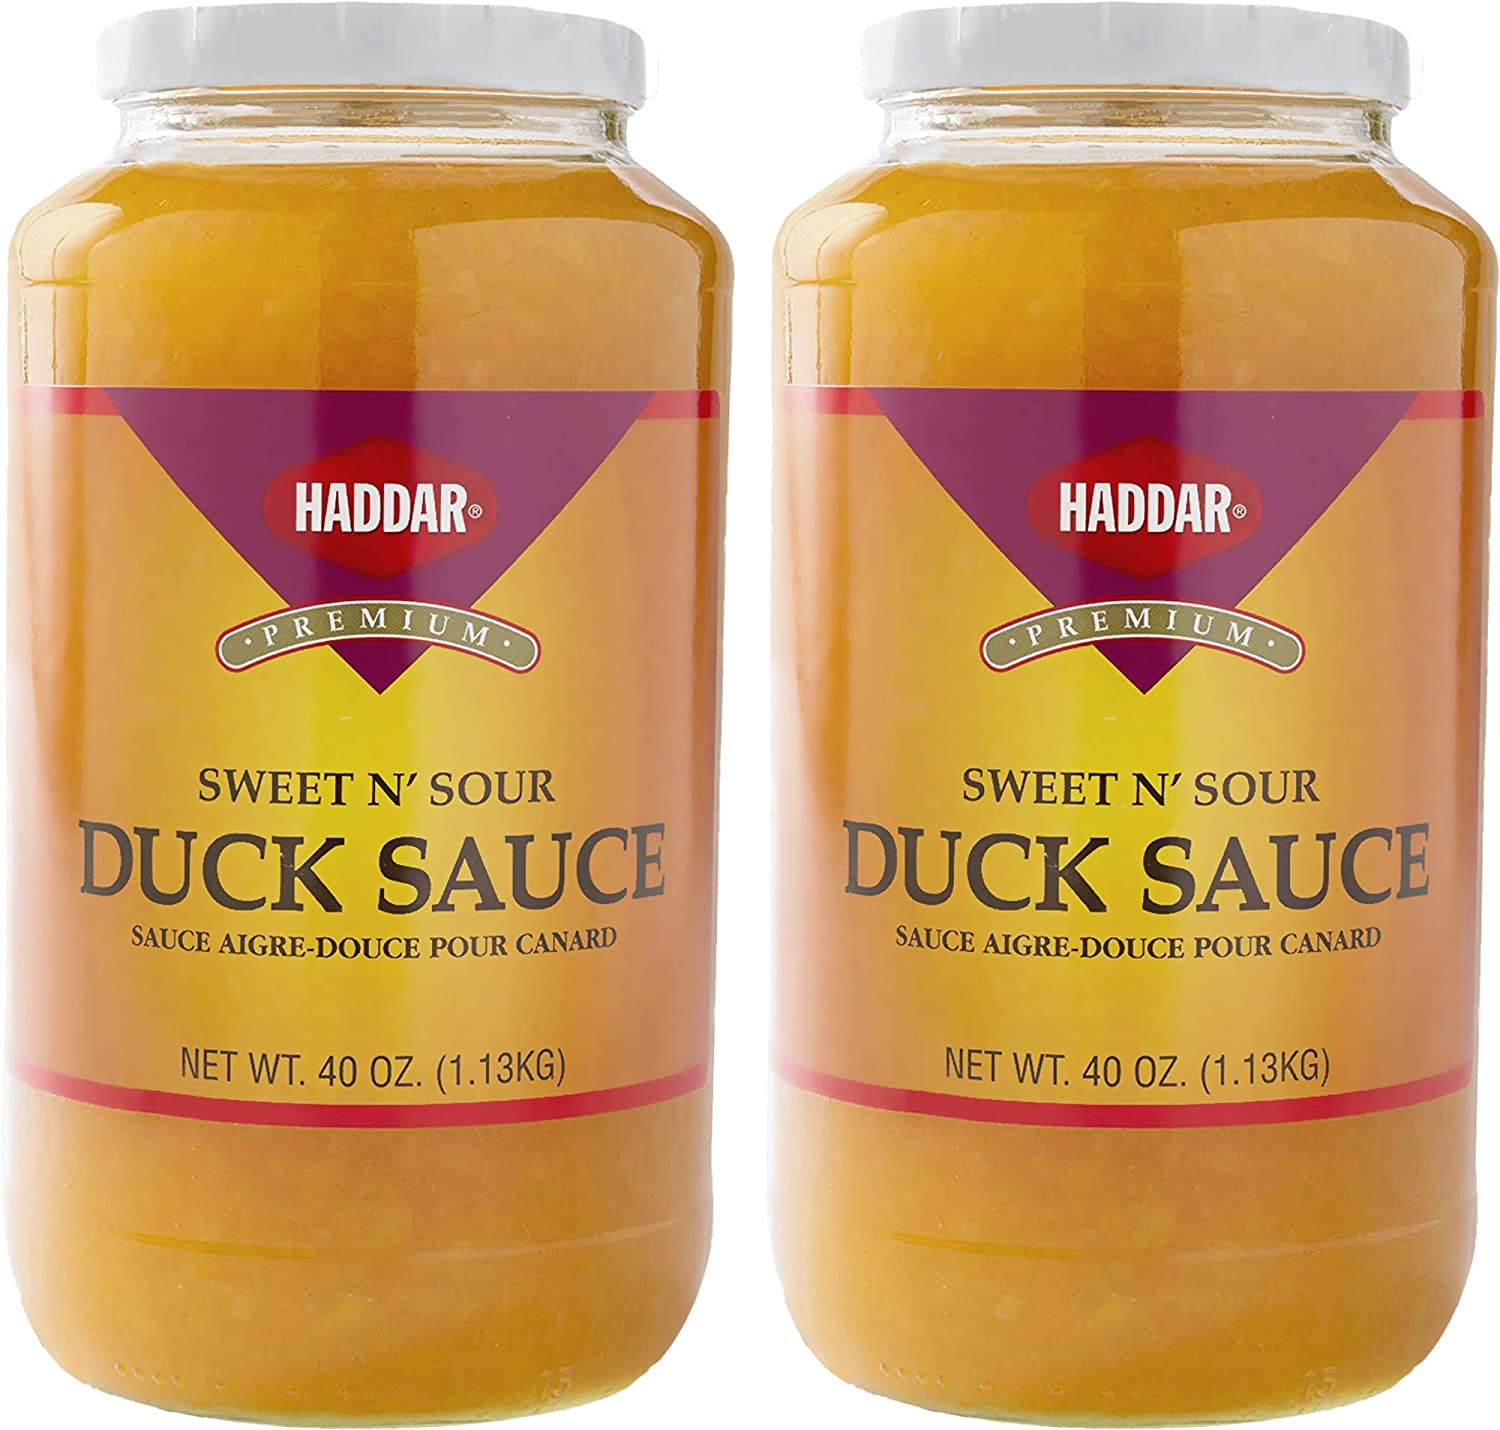 Haddar Sweet Sour Duck Sauce 40oz 2 Fat Free No Regular Max 43% OFF discount MSG Pack